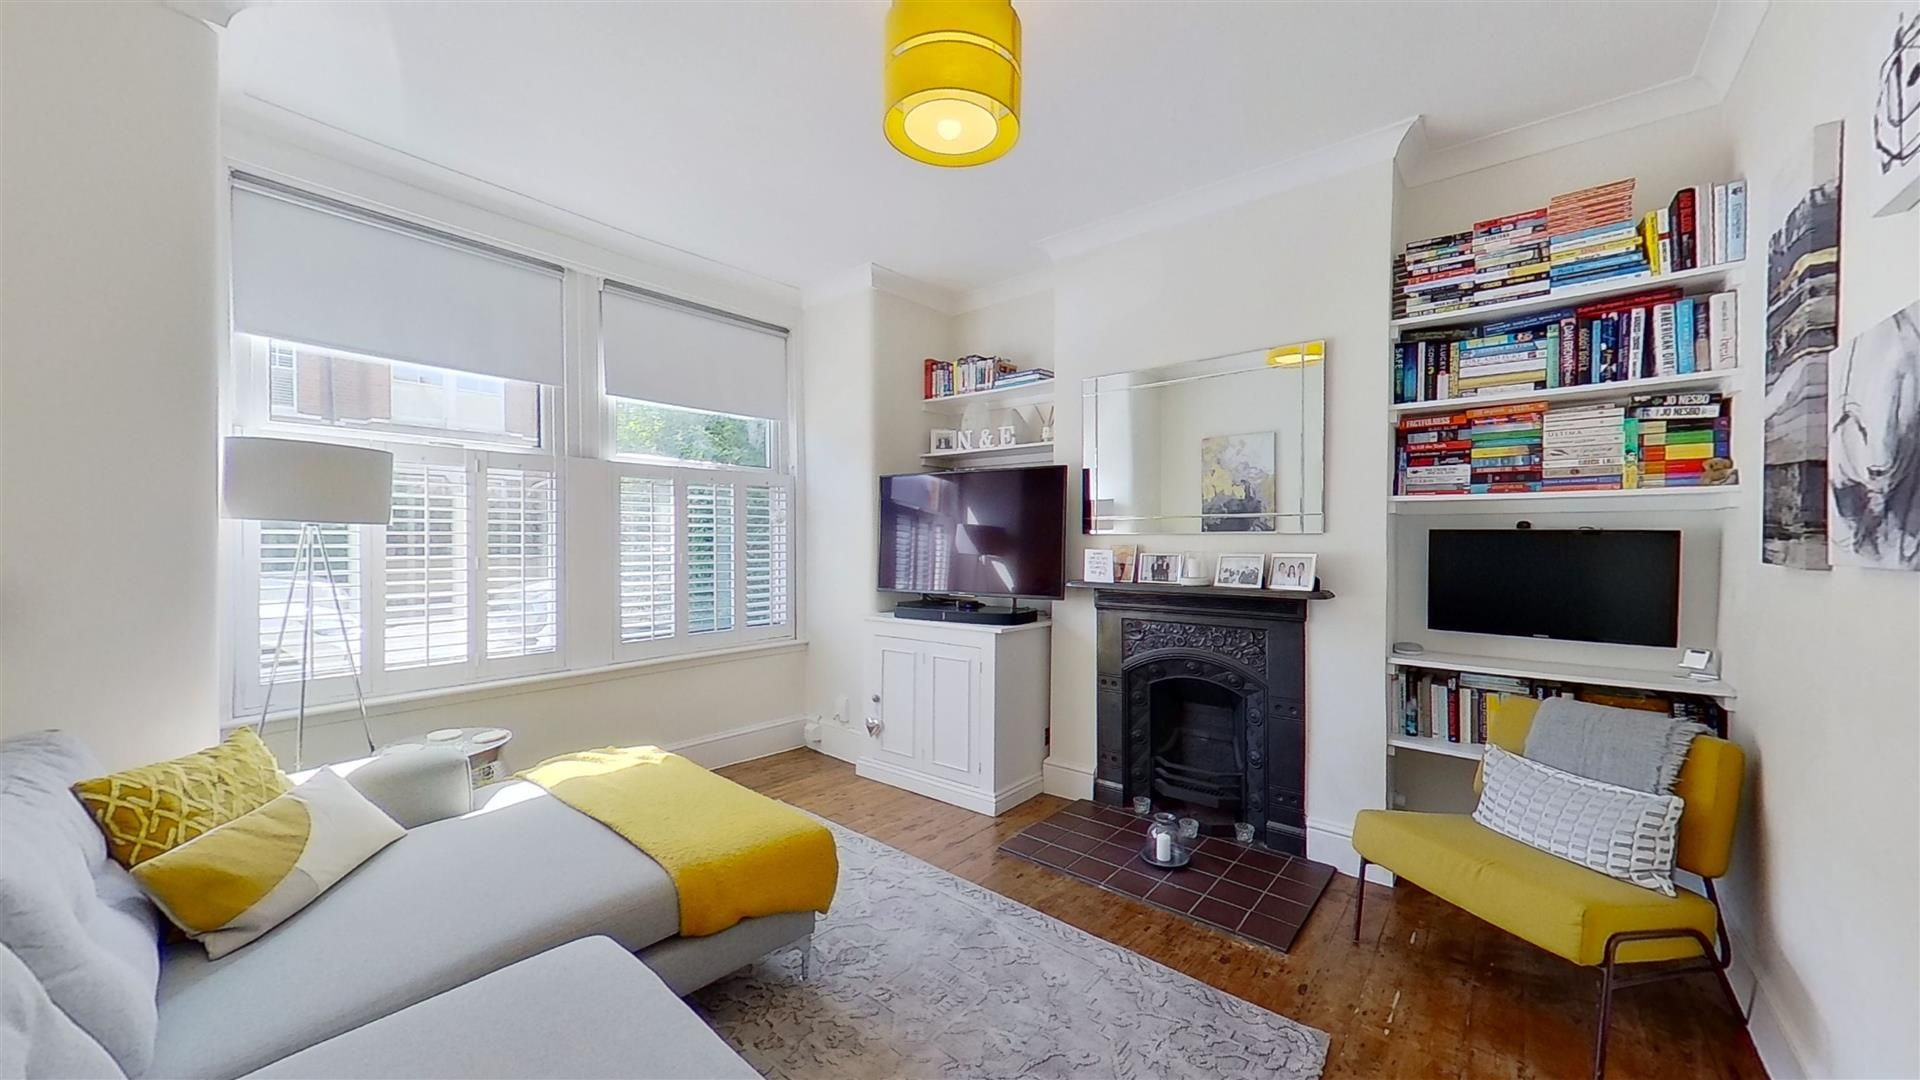 Property photo 1 of 12. Penwith-Road-Earlsfield-Sw18-08252021_170235.Jpg